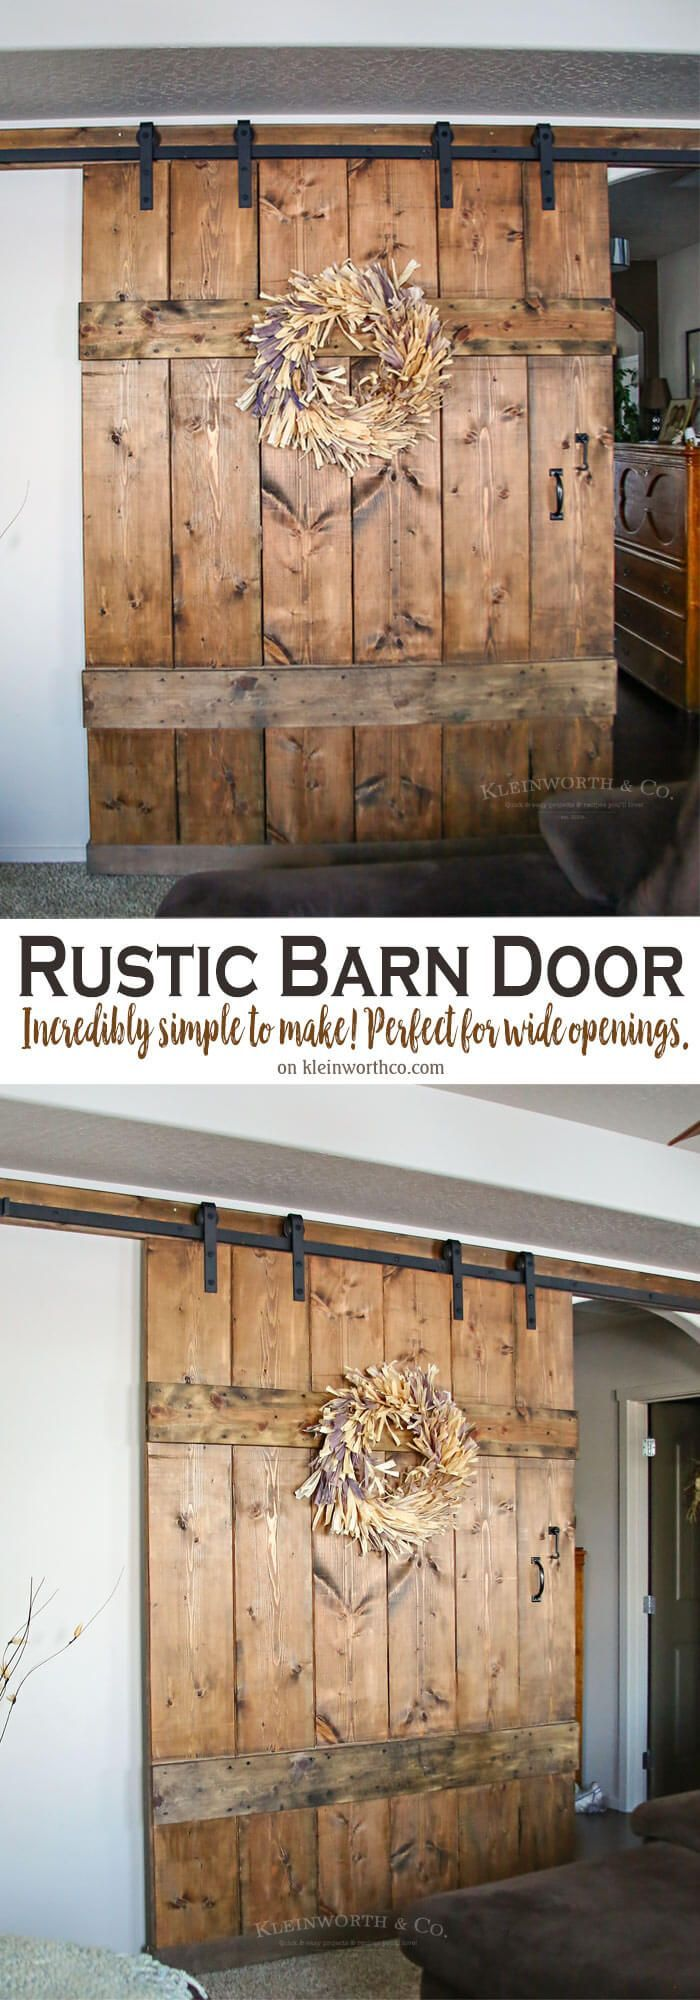 Wide Rustic Barn Door Is 6 Feet Wide Amp Made For Extra